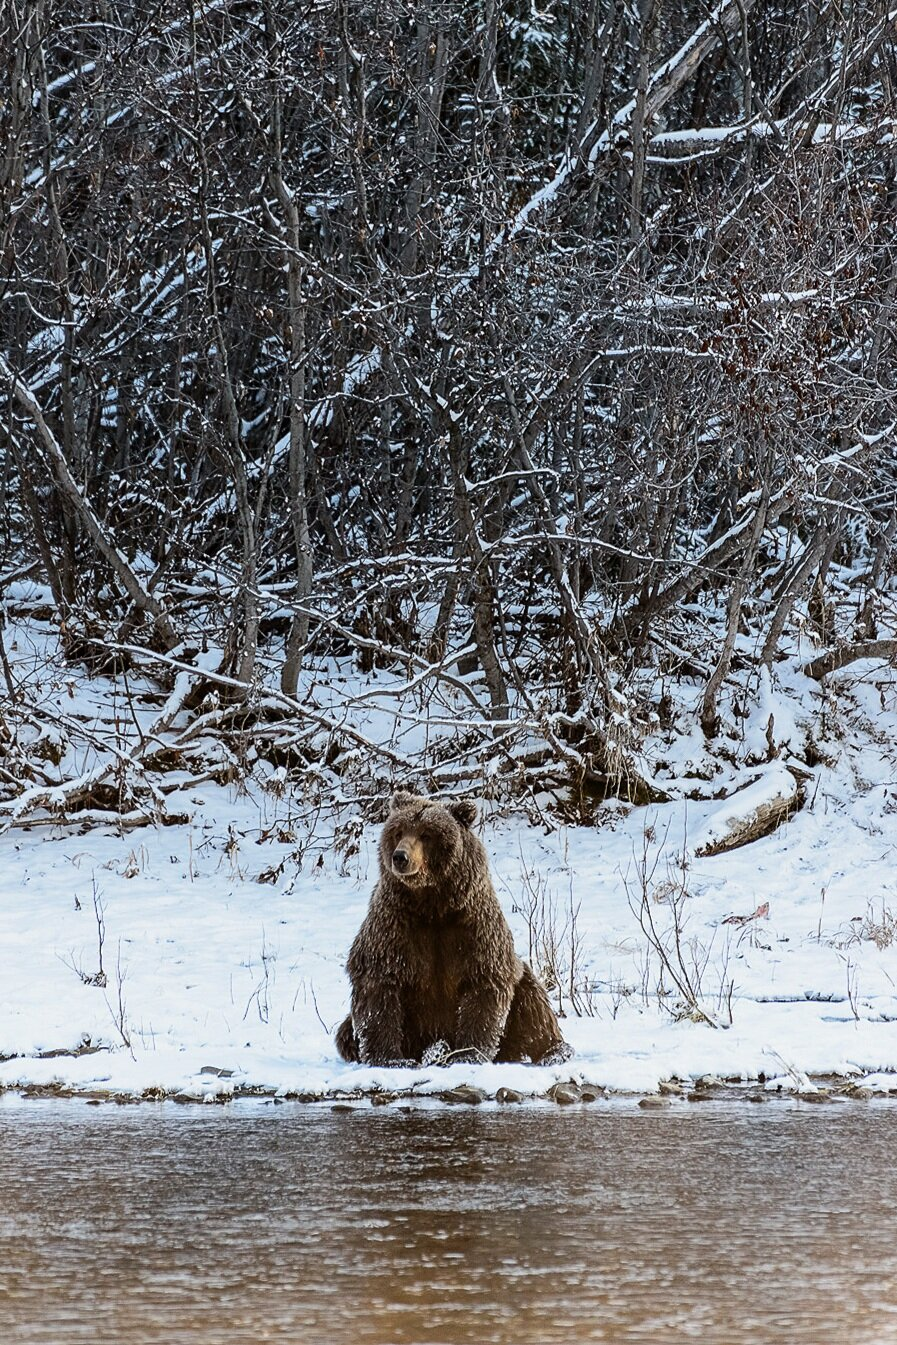 Ice Grizzly Sitting on Snowy Riverbank 1